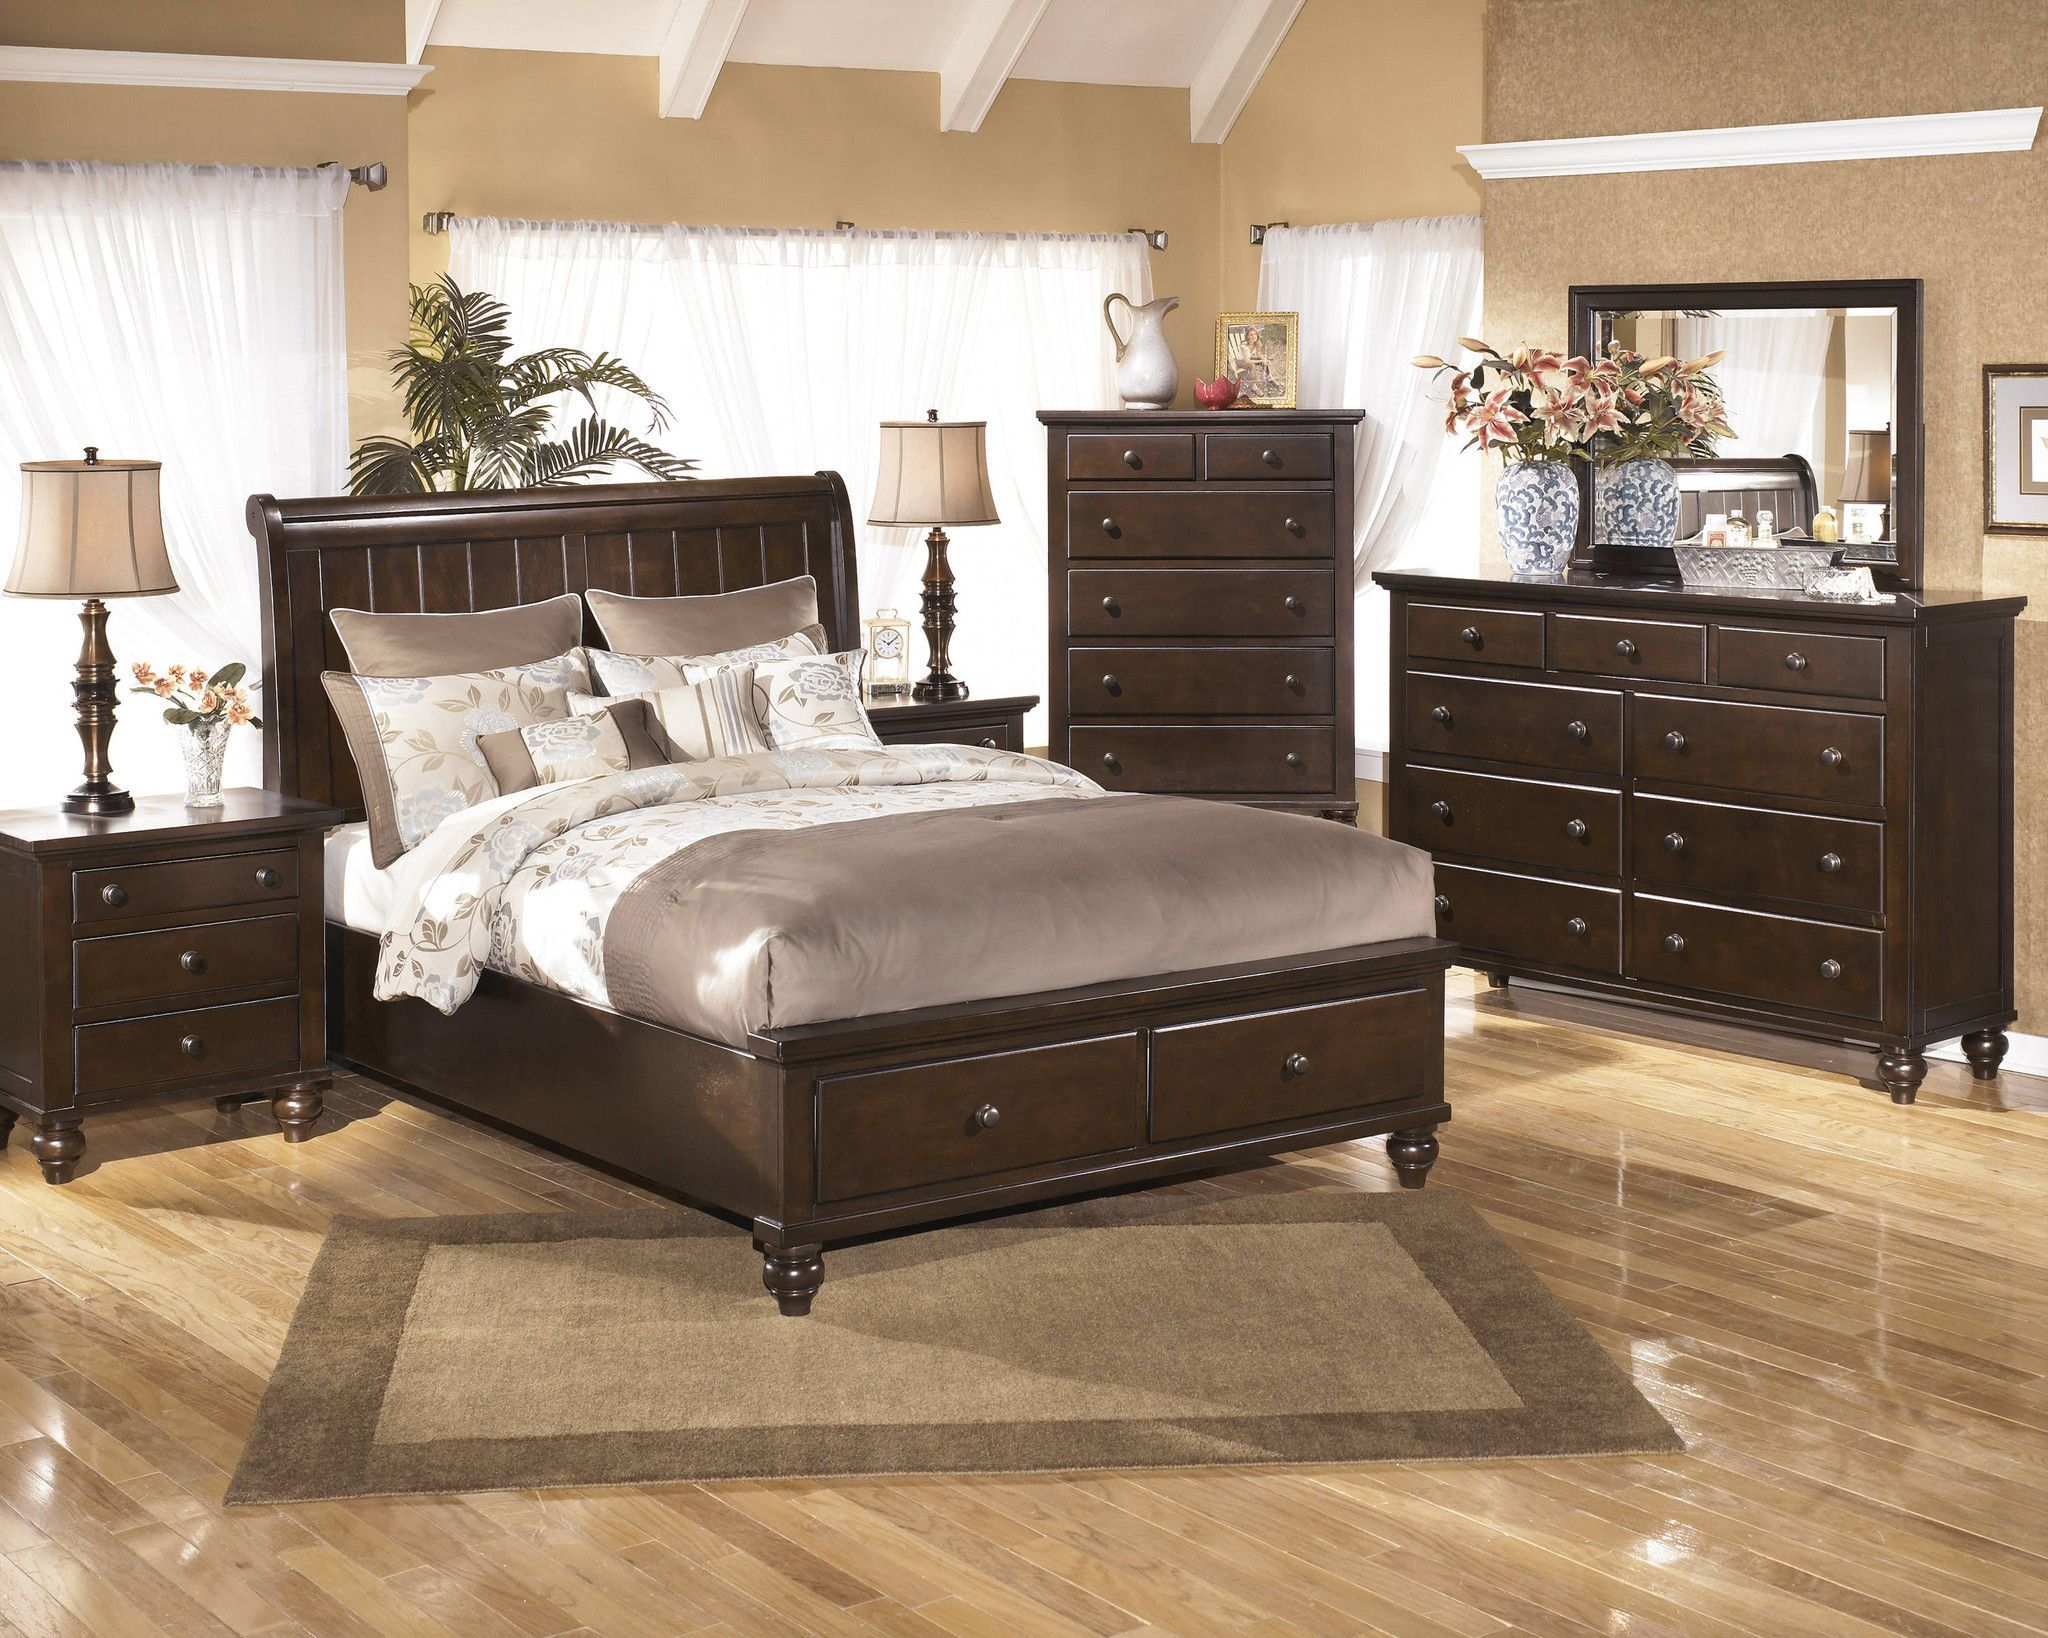 King Size Bedroom Sets With Storage camdyn storage king bedroom setashley furniture | house ideas